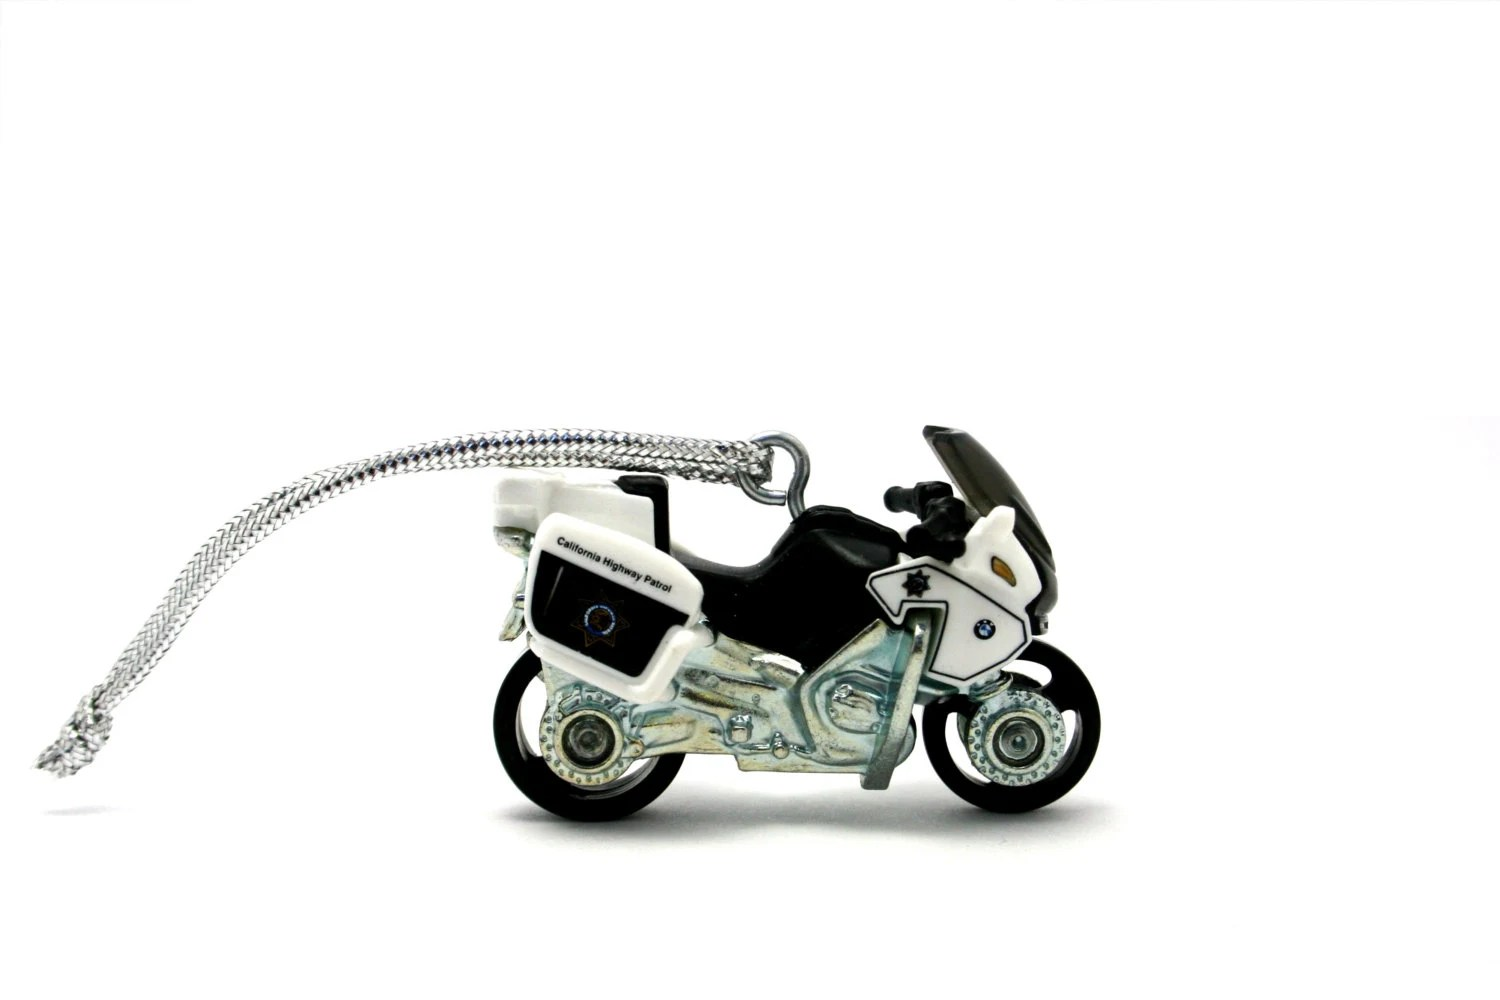 BMW R1200 RT-P Police Motorcycle Matchbox Ornament